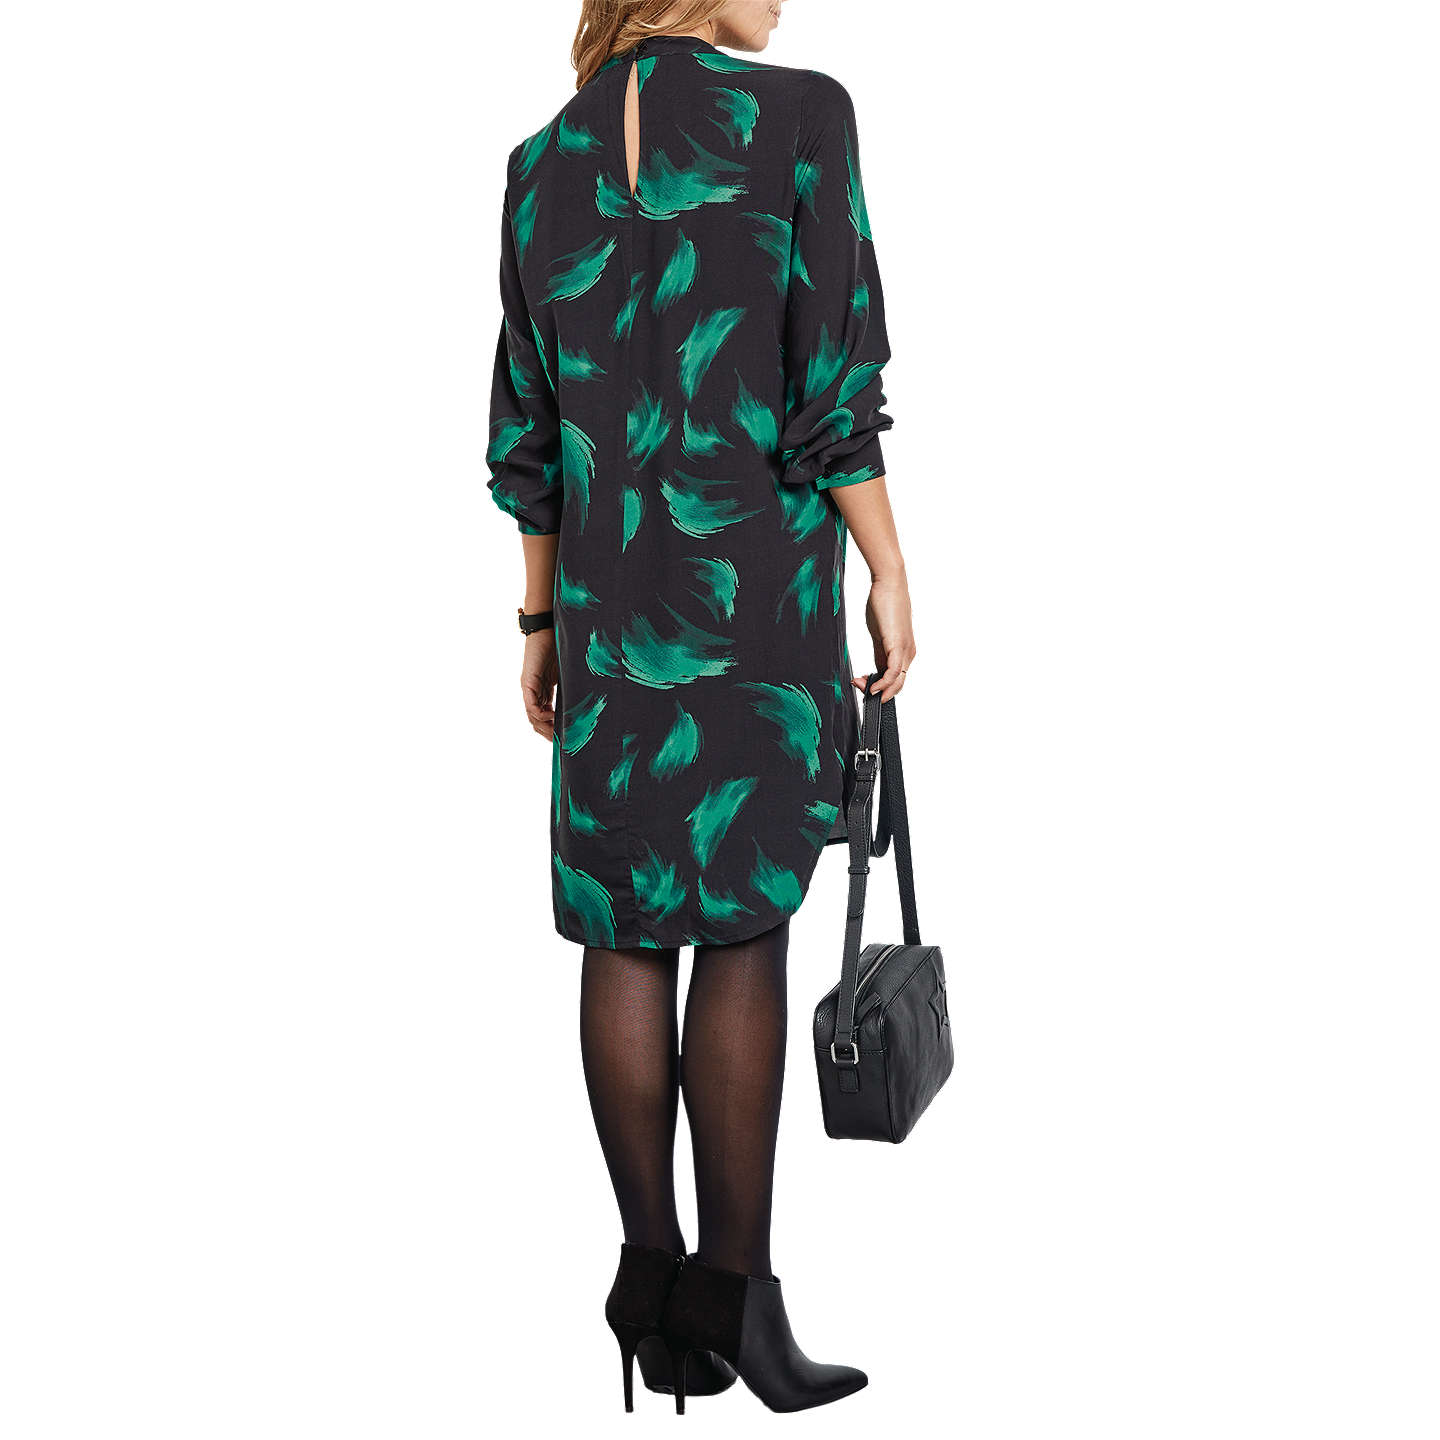 Buyhush Gardenia Shift Dress, Splash Green, 6 Online at johnlewis.com